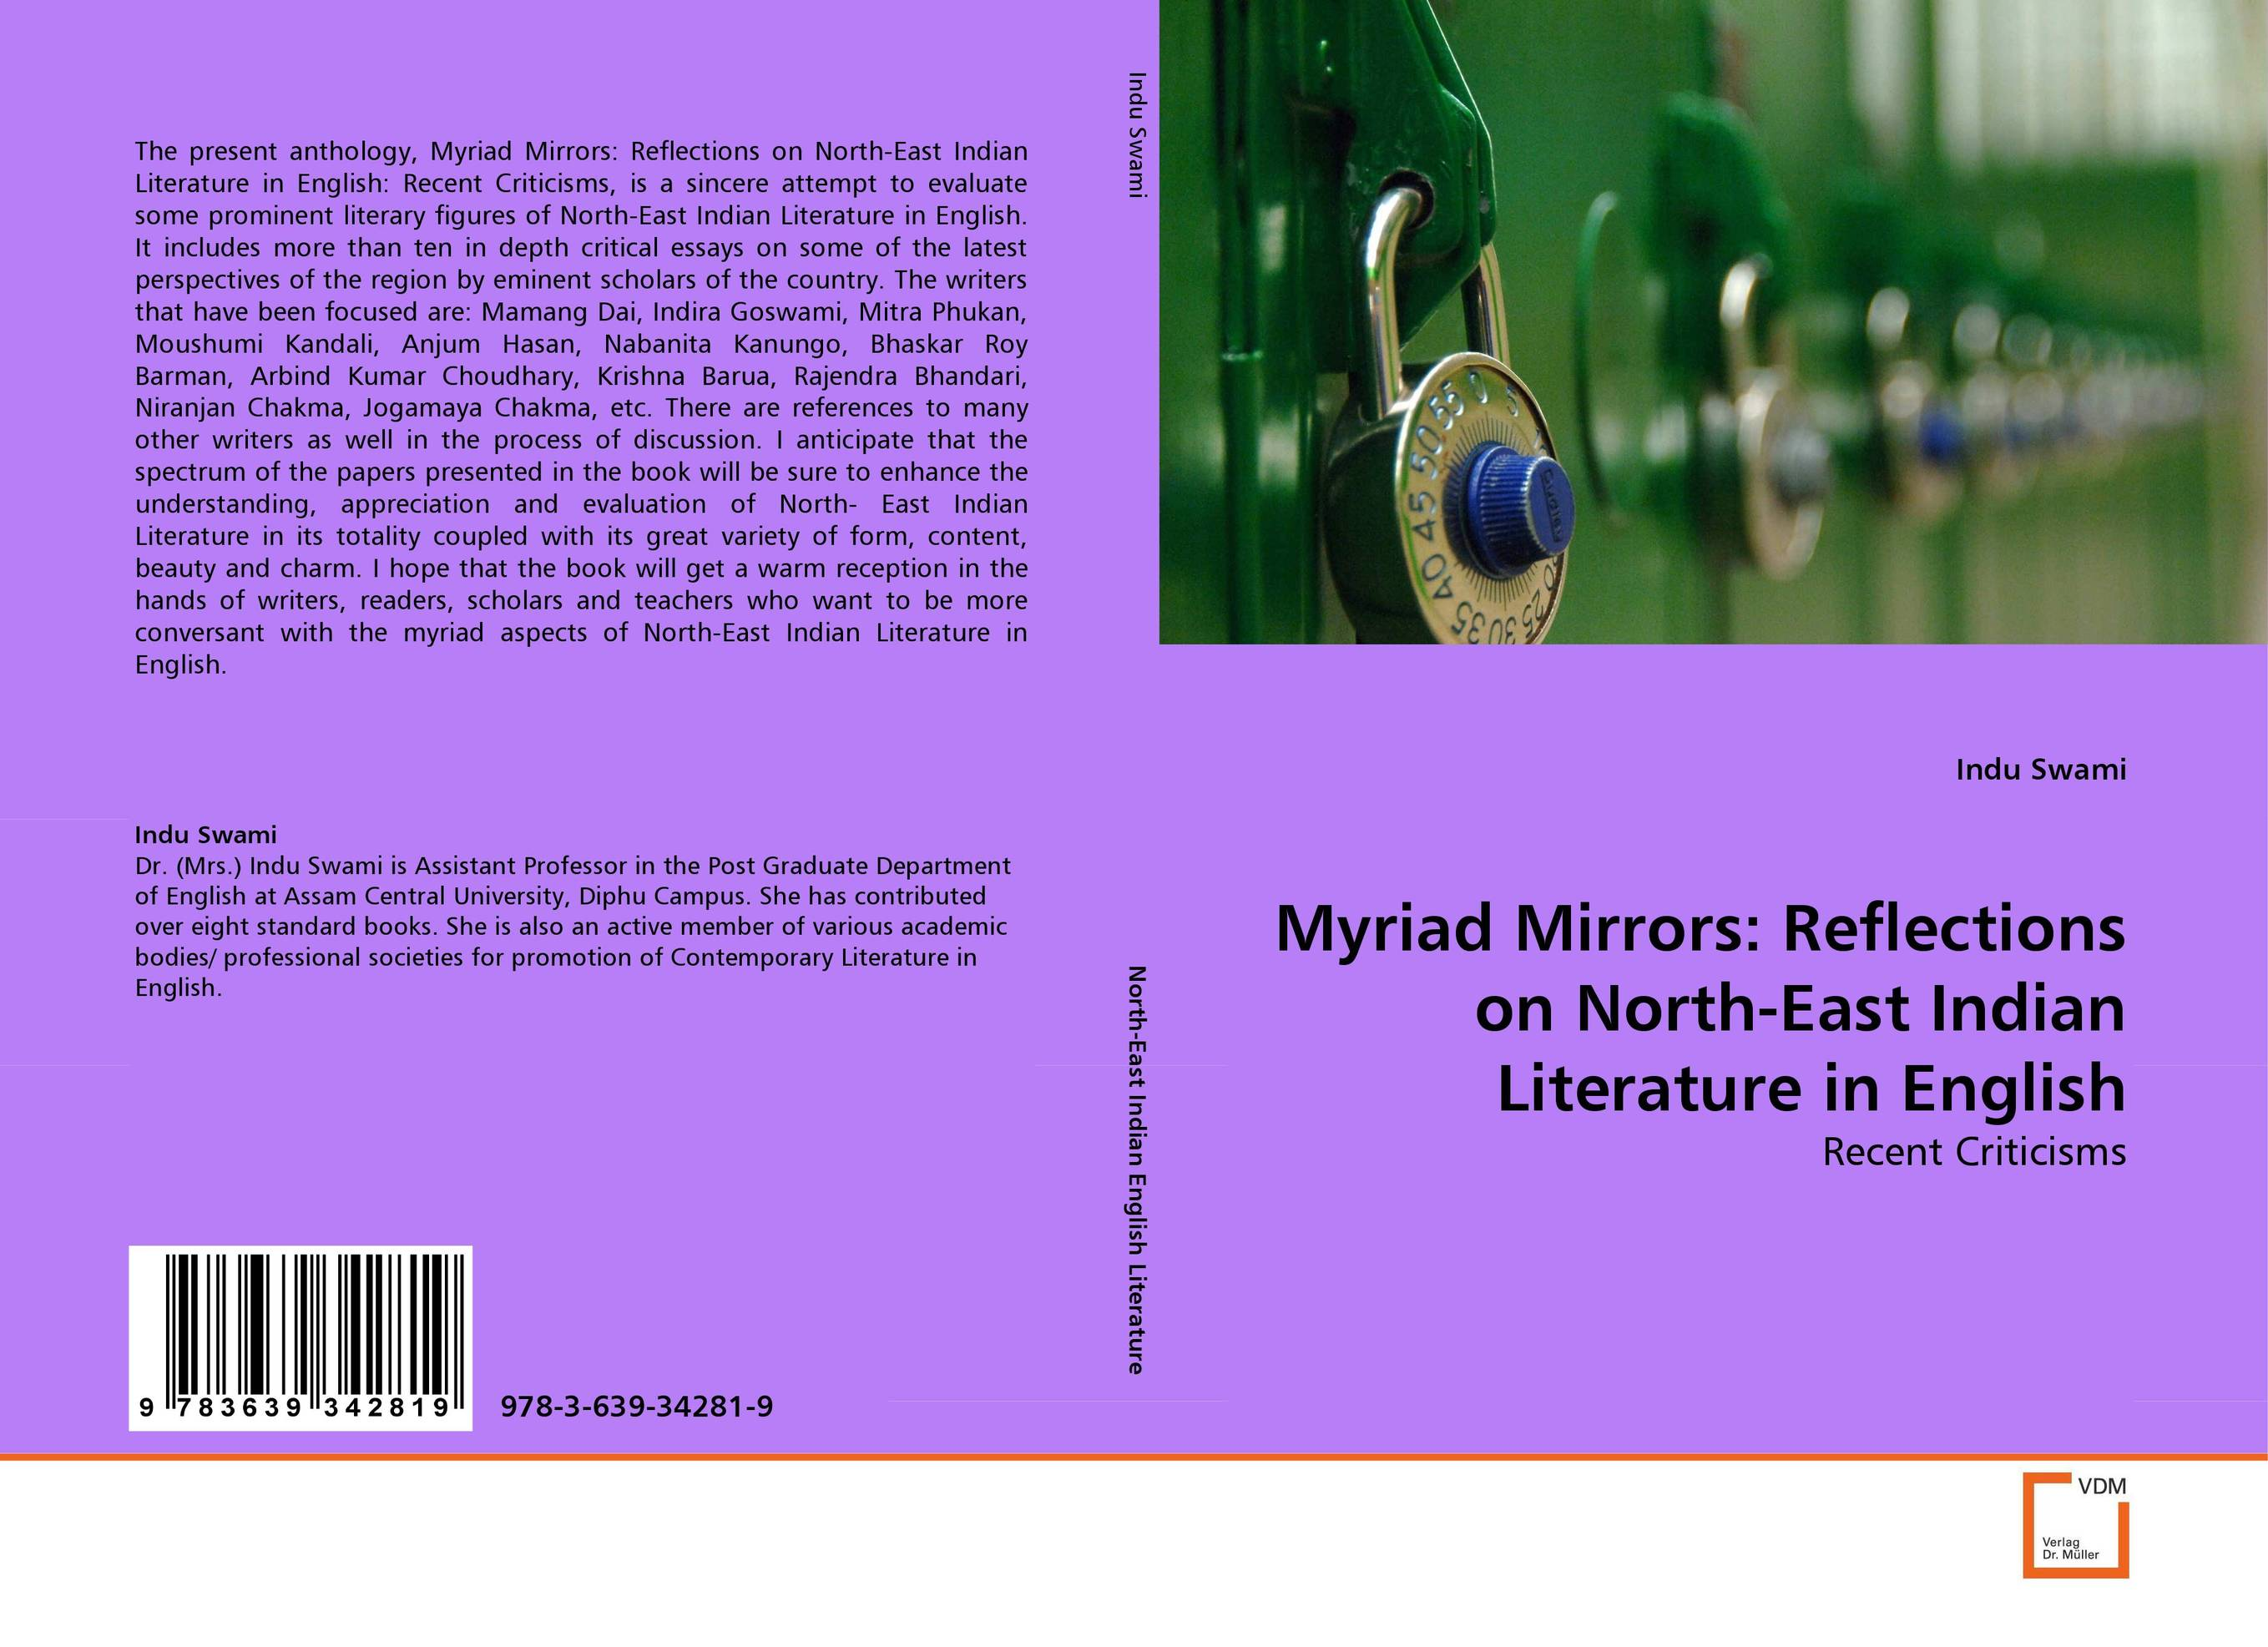 Myriad Mirrors: Reflections on North-East Indian Literature in English